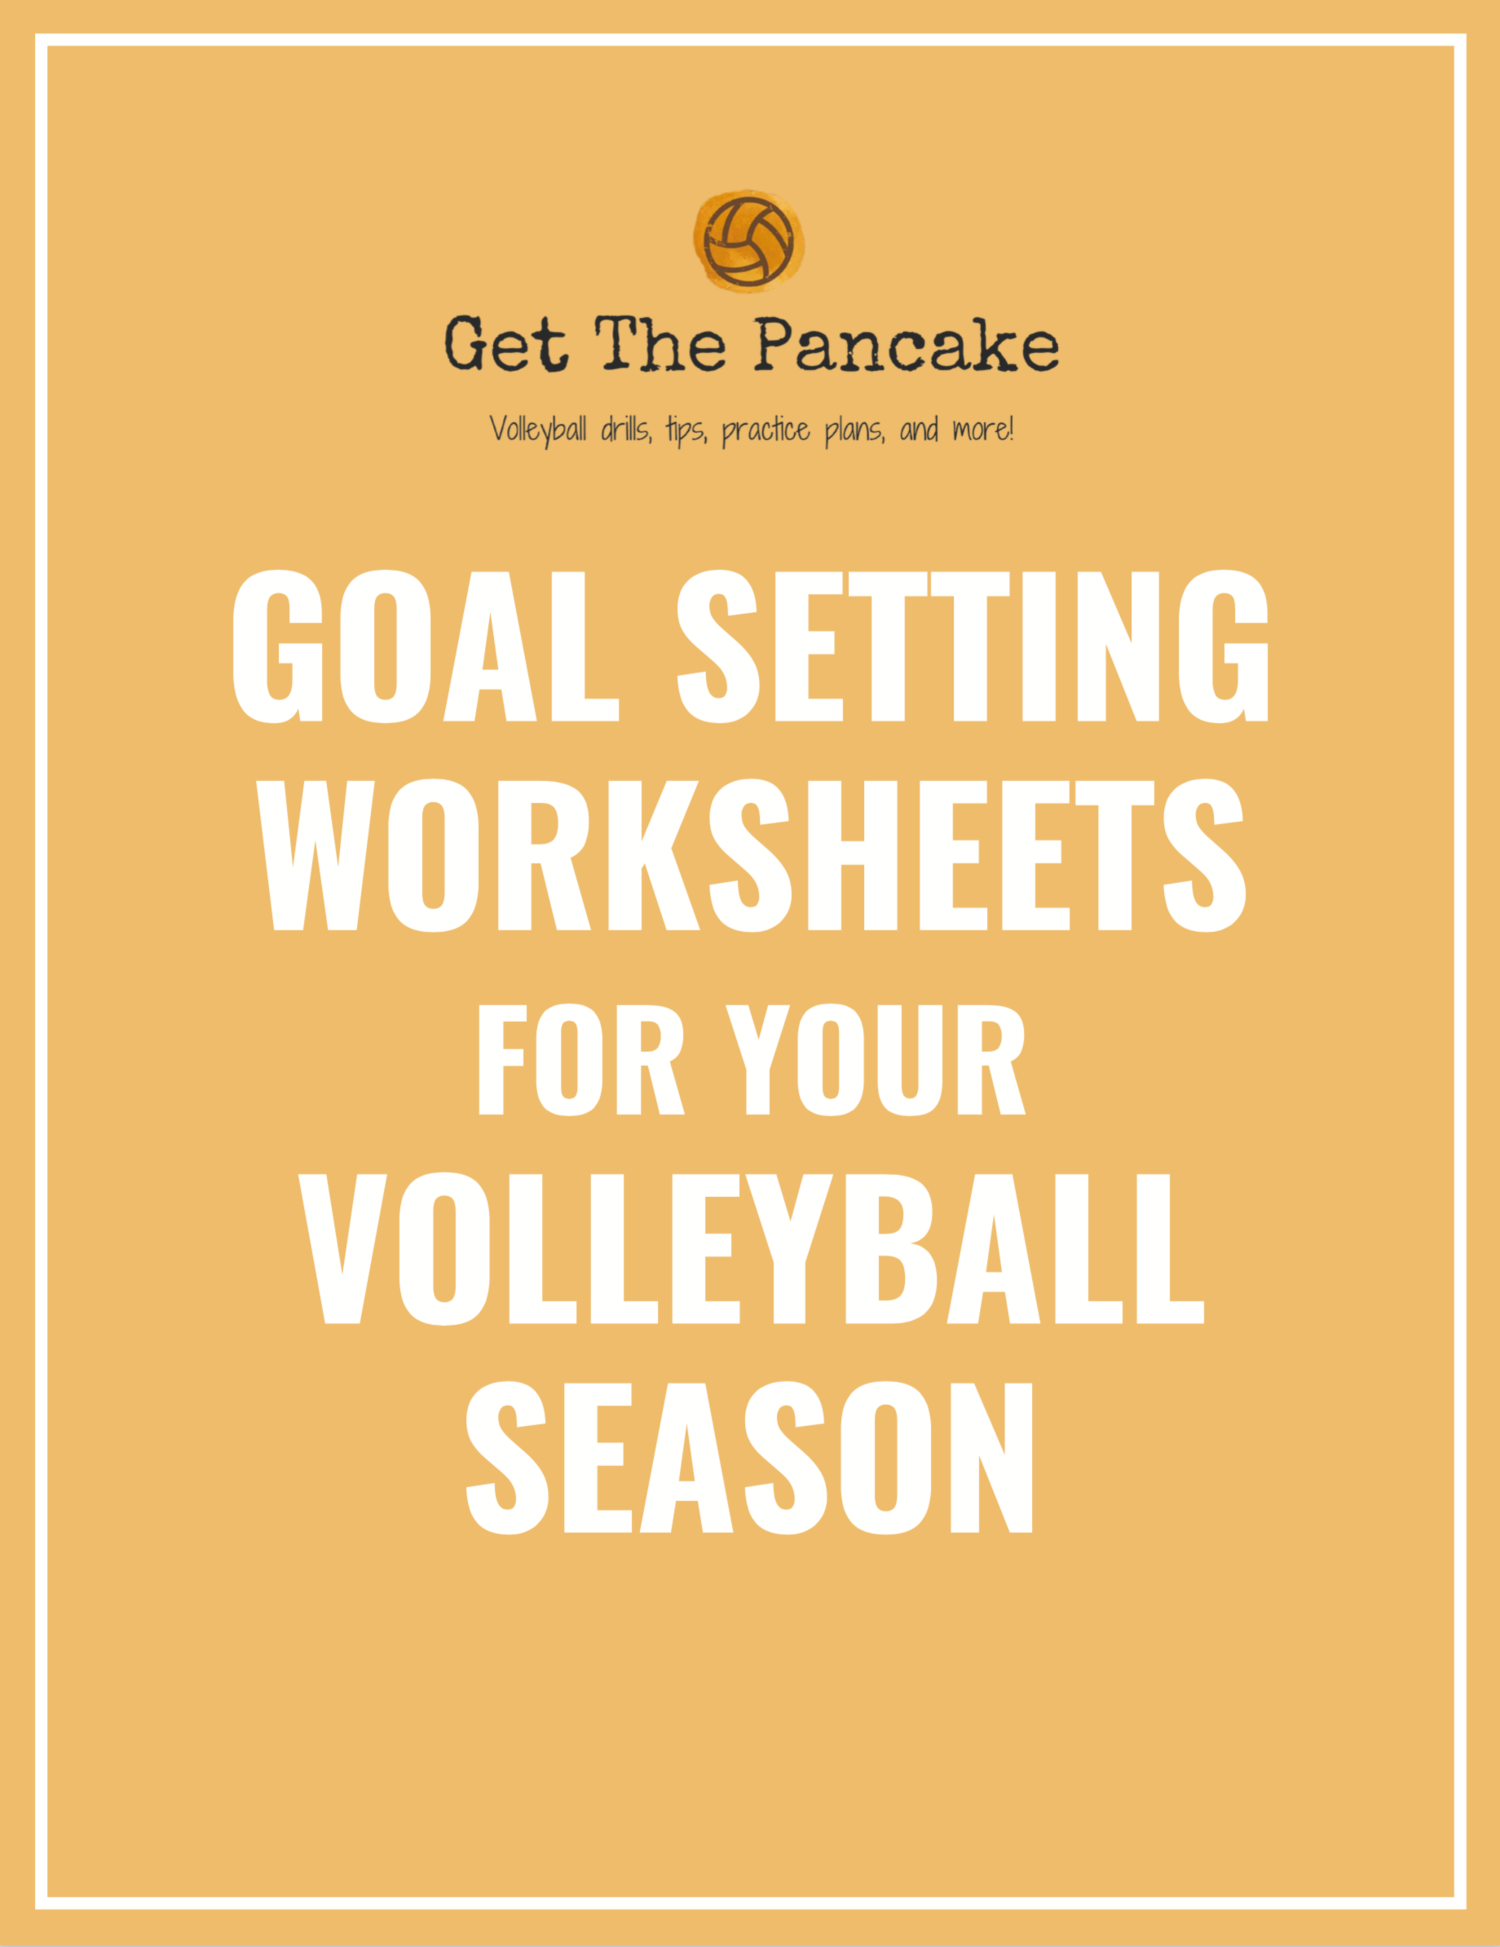 Pre Made Practice Plan Serve Receive And Using Three Hits